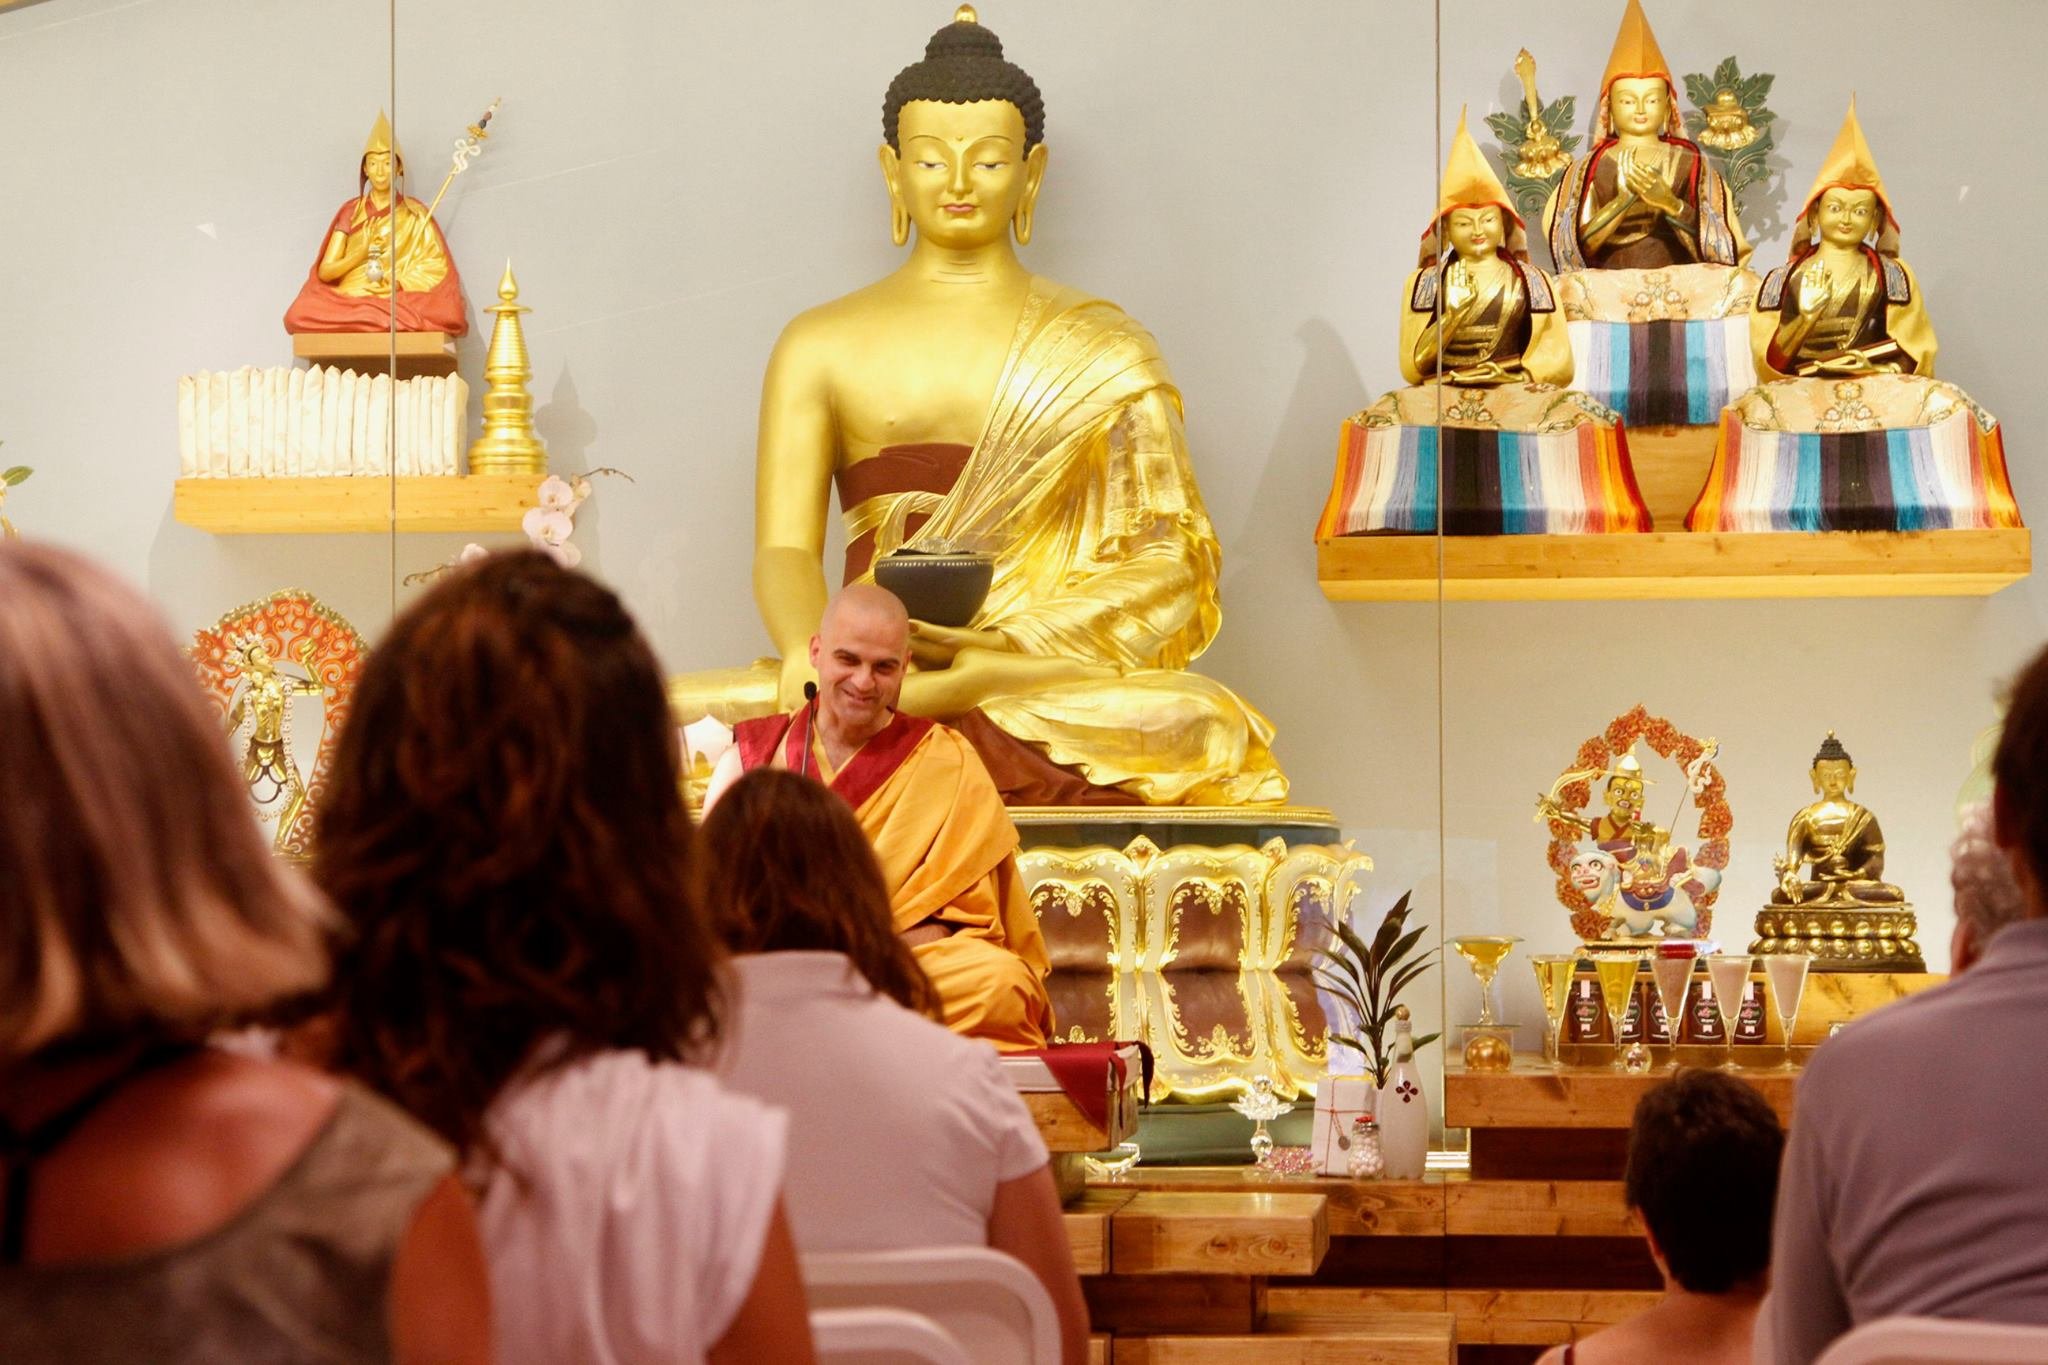 kadampa-meditation-center-barcelona-spain-7